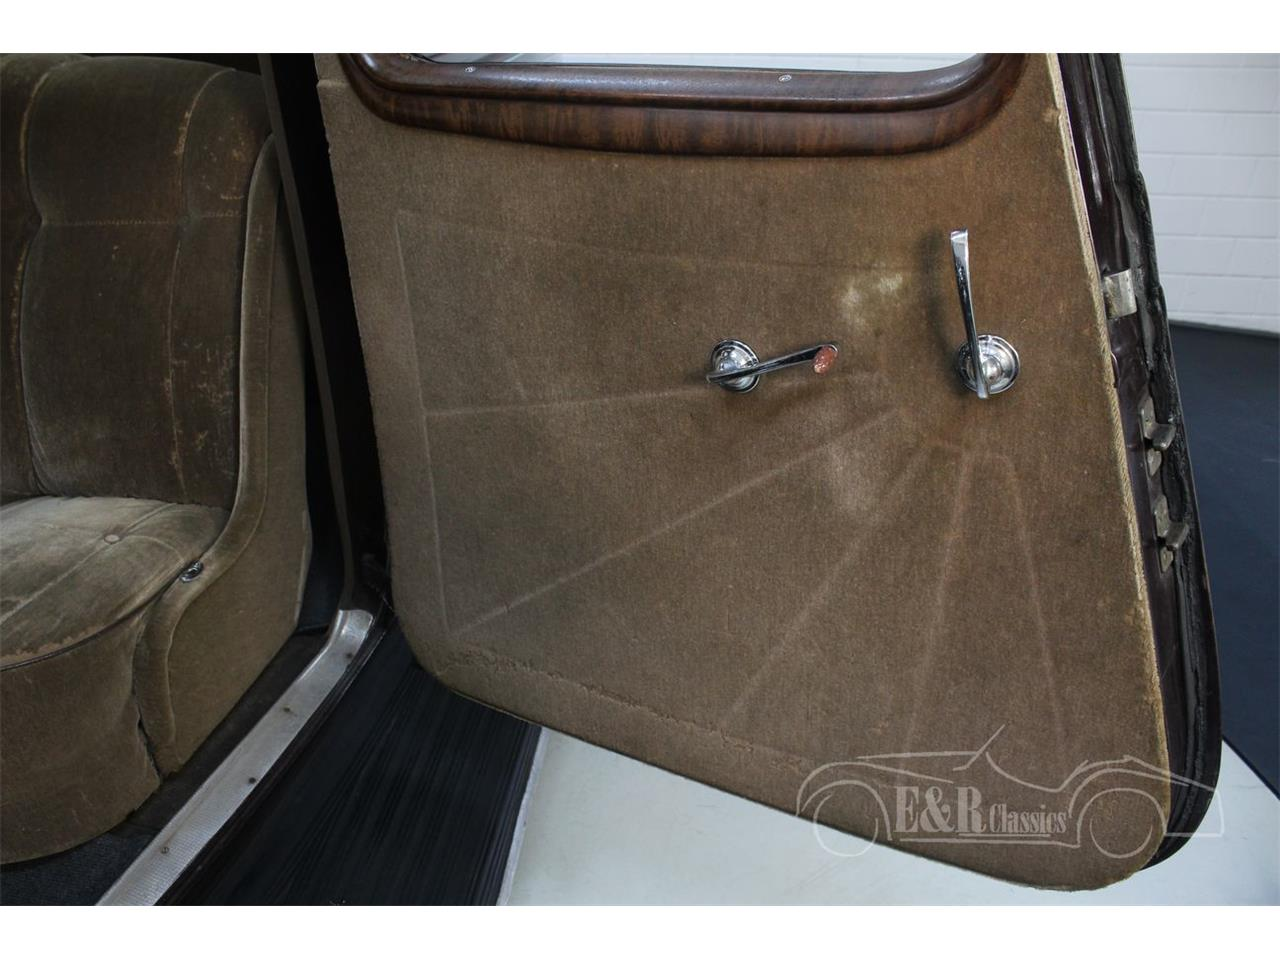 Large Picture of '35 Dictator located in Waalwijk noord brabant - $33,800.00 Offered by E & R Classics - QJ2R